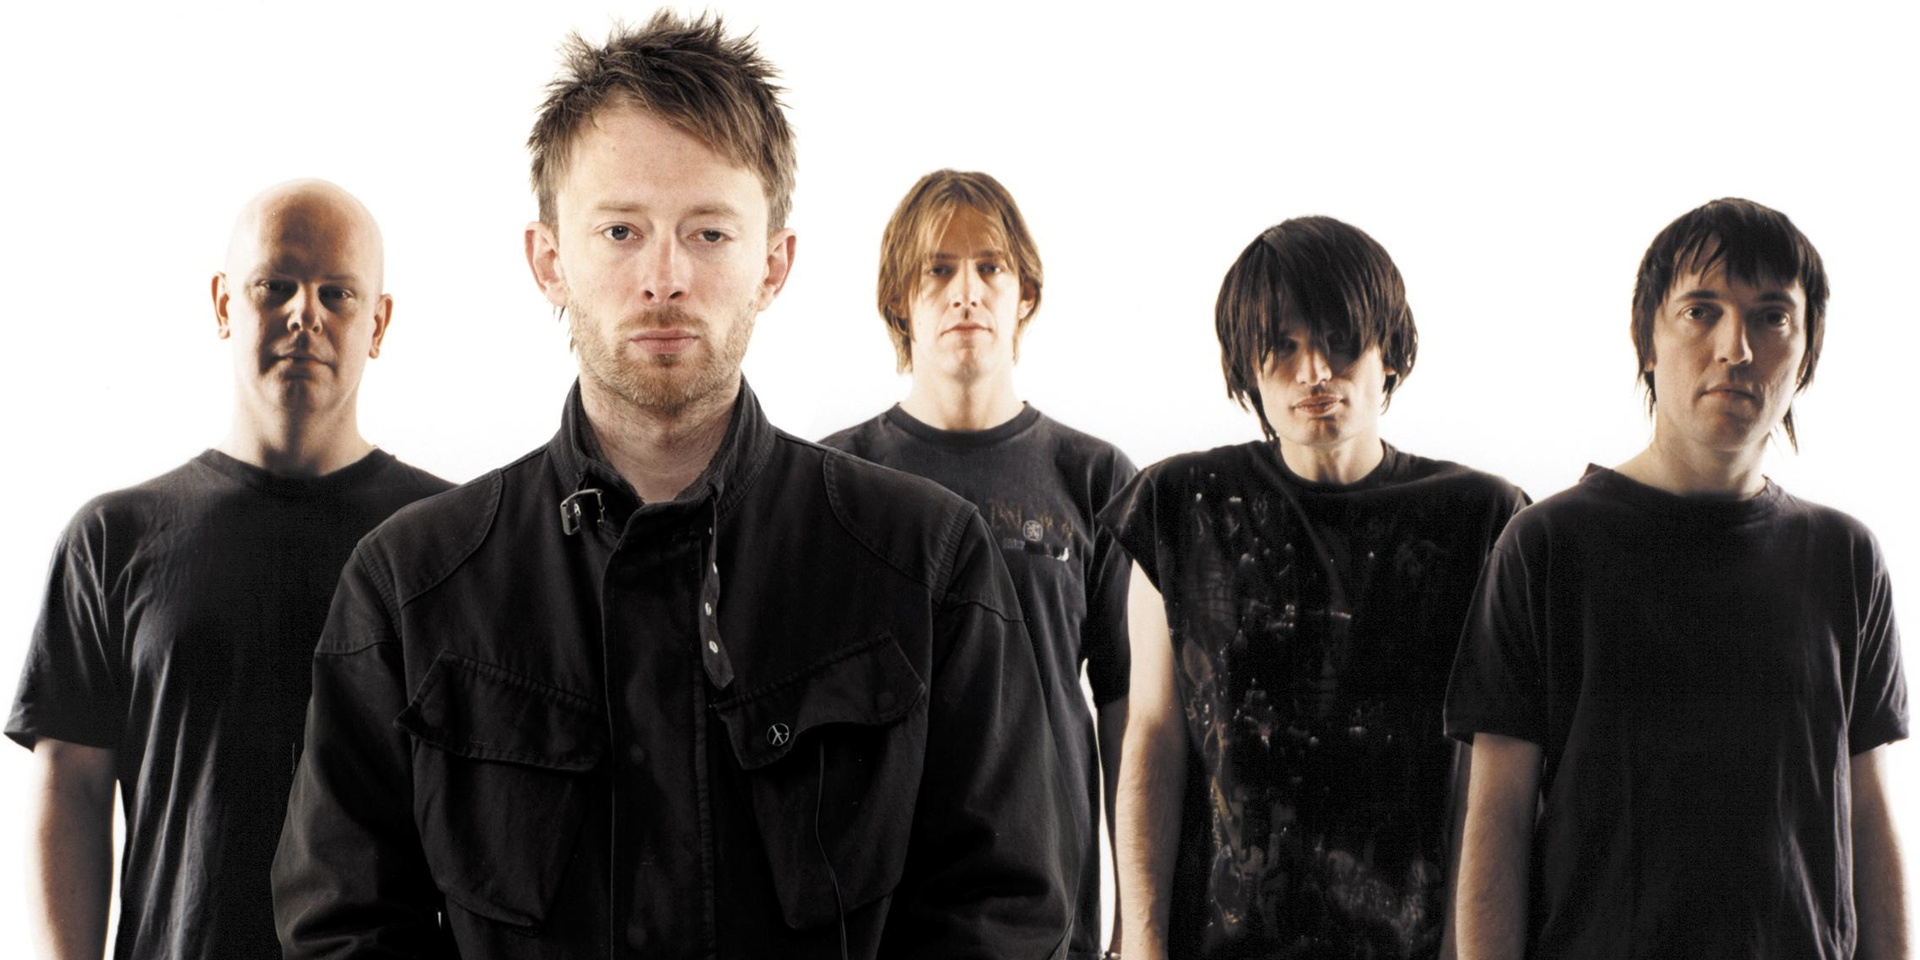 Radiohead is coming to Asia